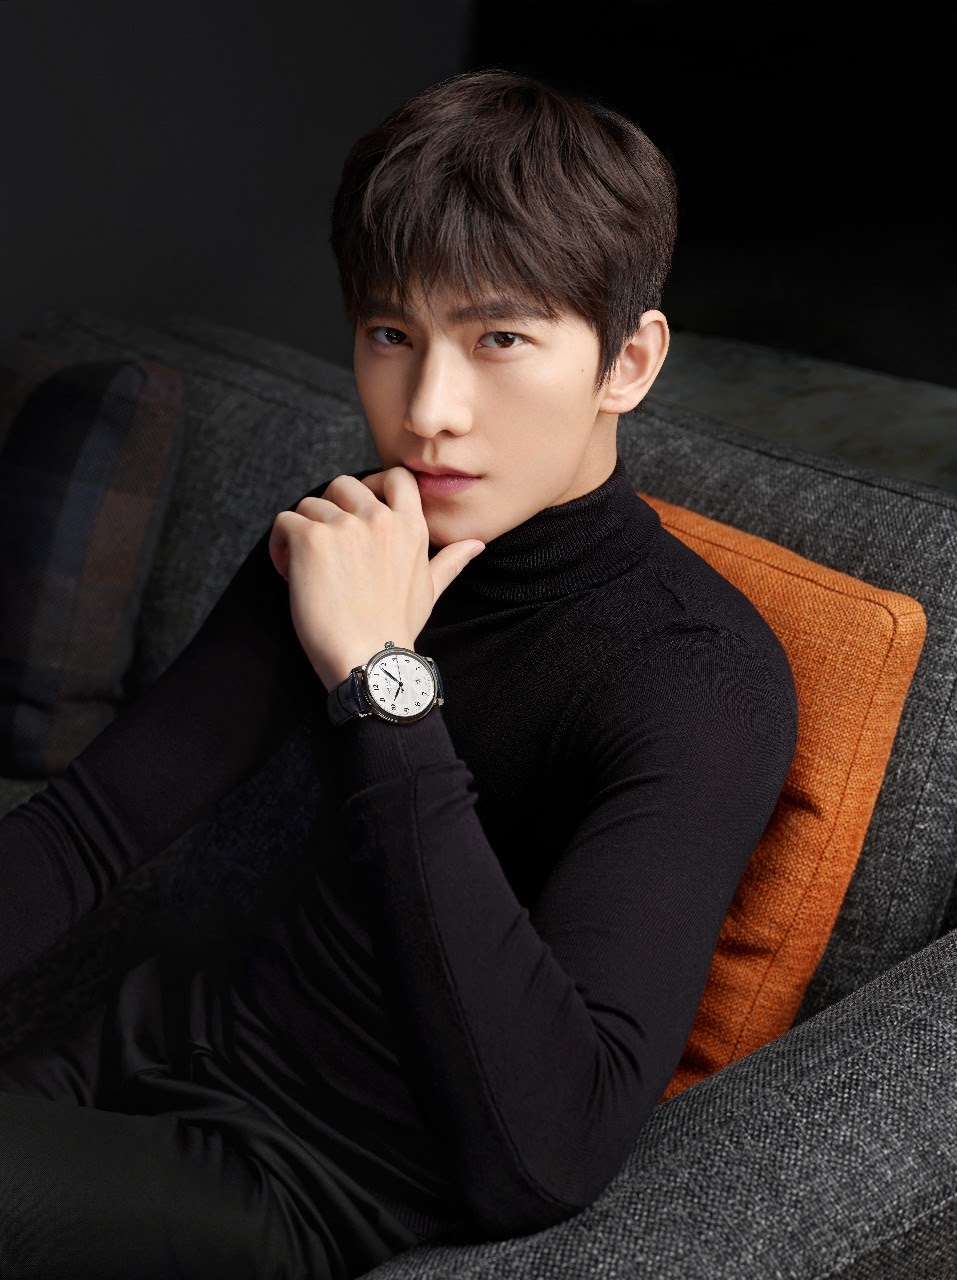 He is known for his roles in the king's avatar, the whirlwind girl, love o2o, the lost tomb, martial universe, the left ear, i belonged to you, and once upon a time.he has been the brand ambassador for brands like guerlain, montblanc, valentino, dior, and puma. News Central - Chinese actor Yang Yang is Montblanc's ...